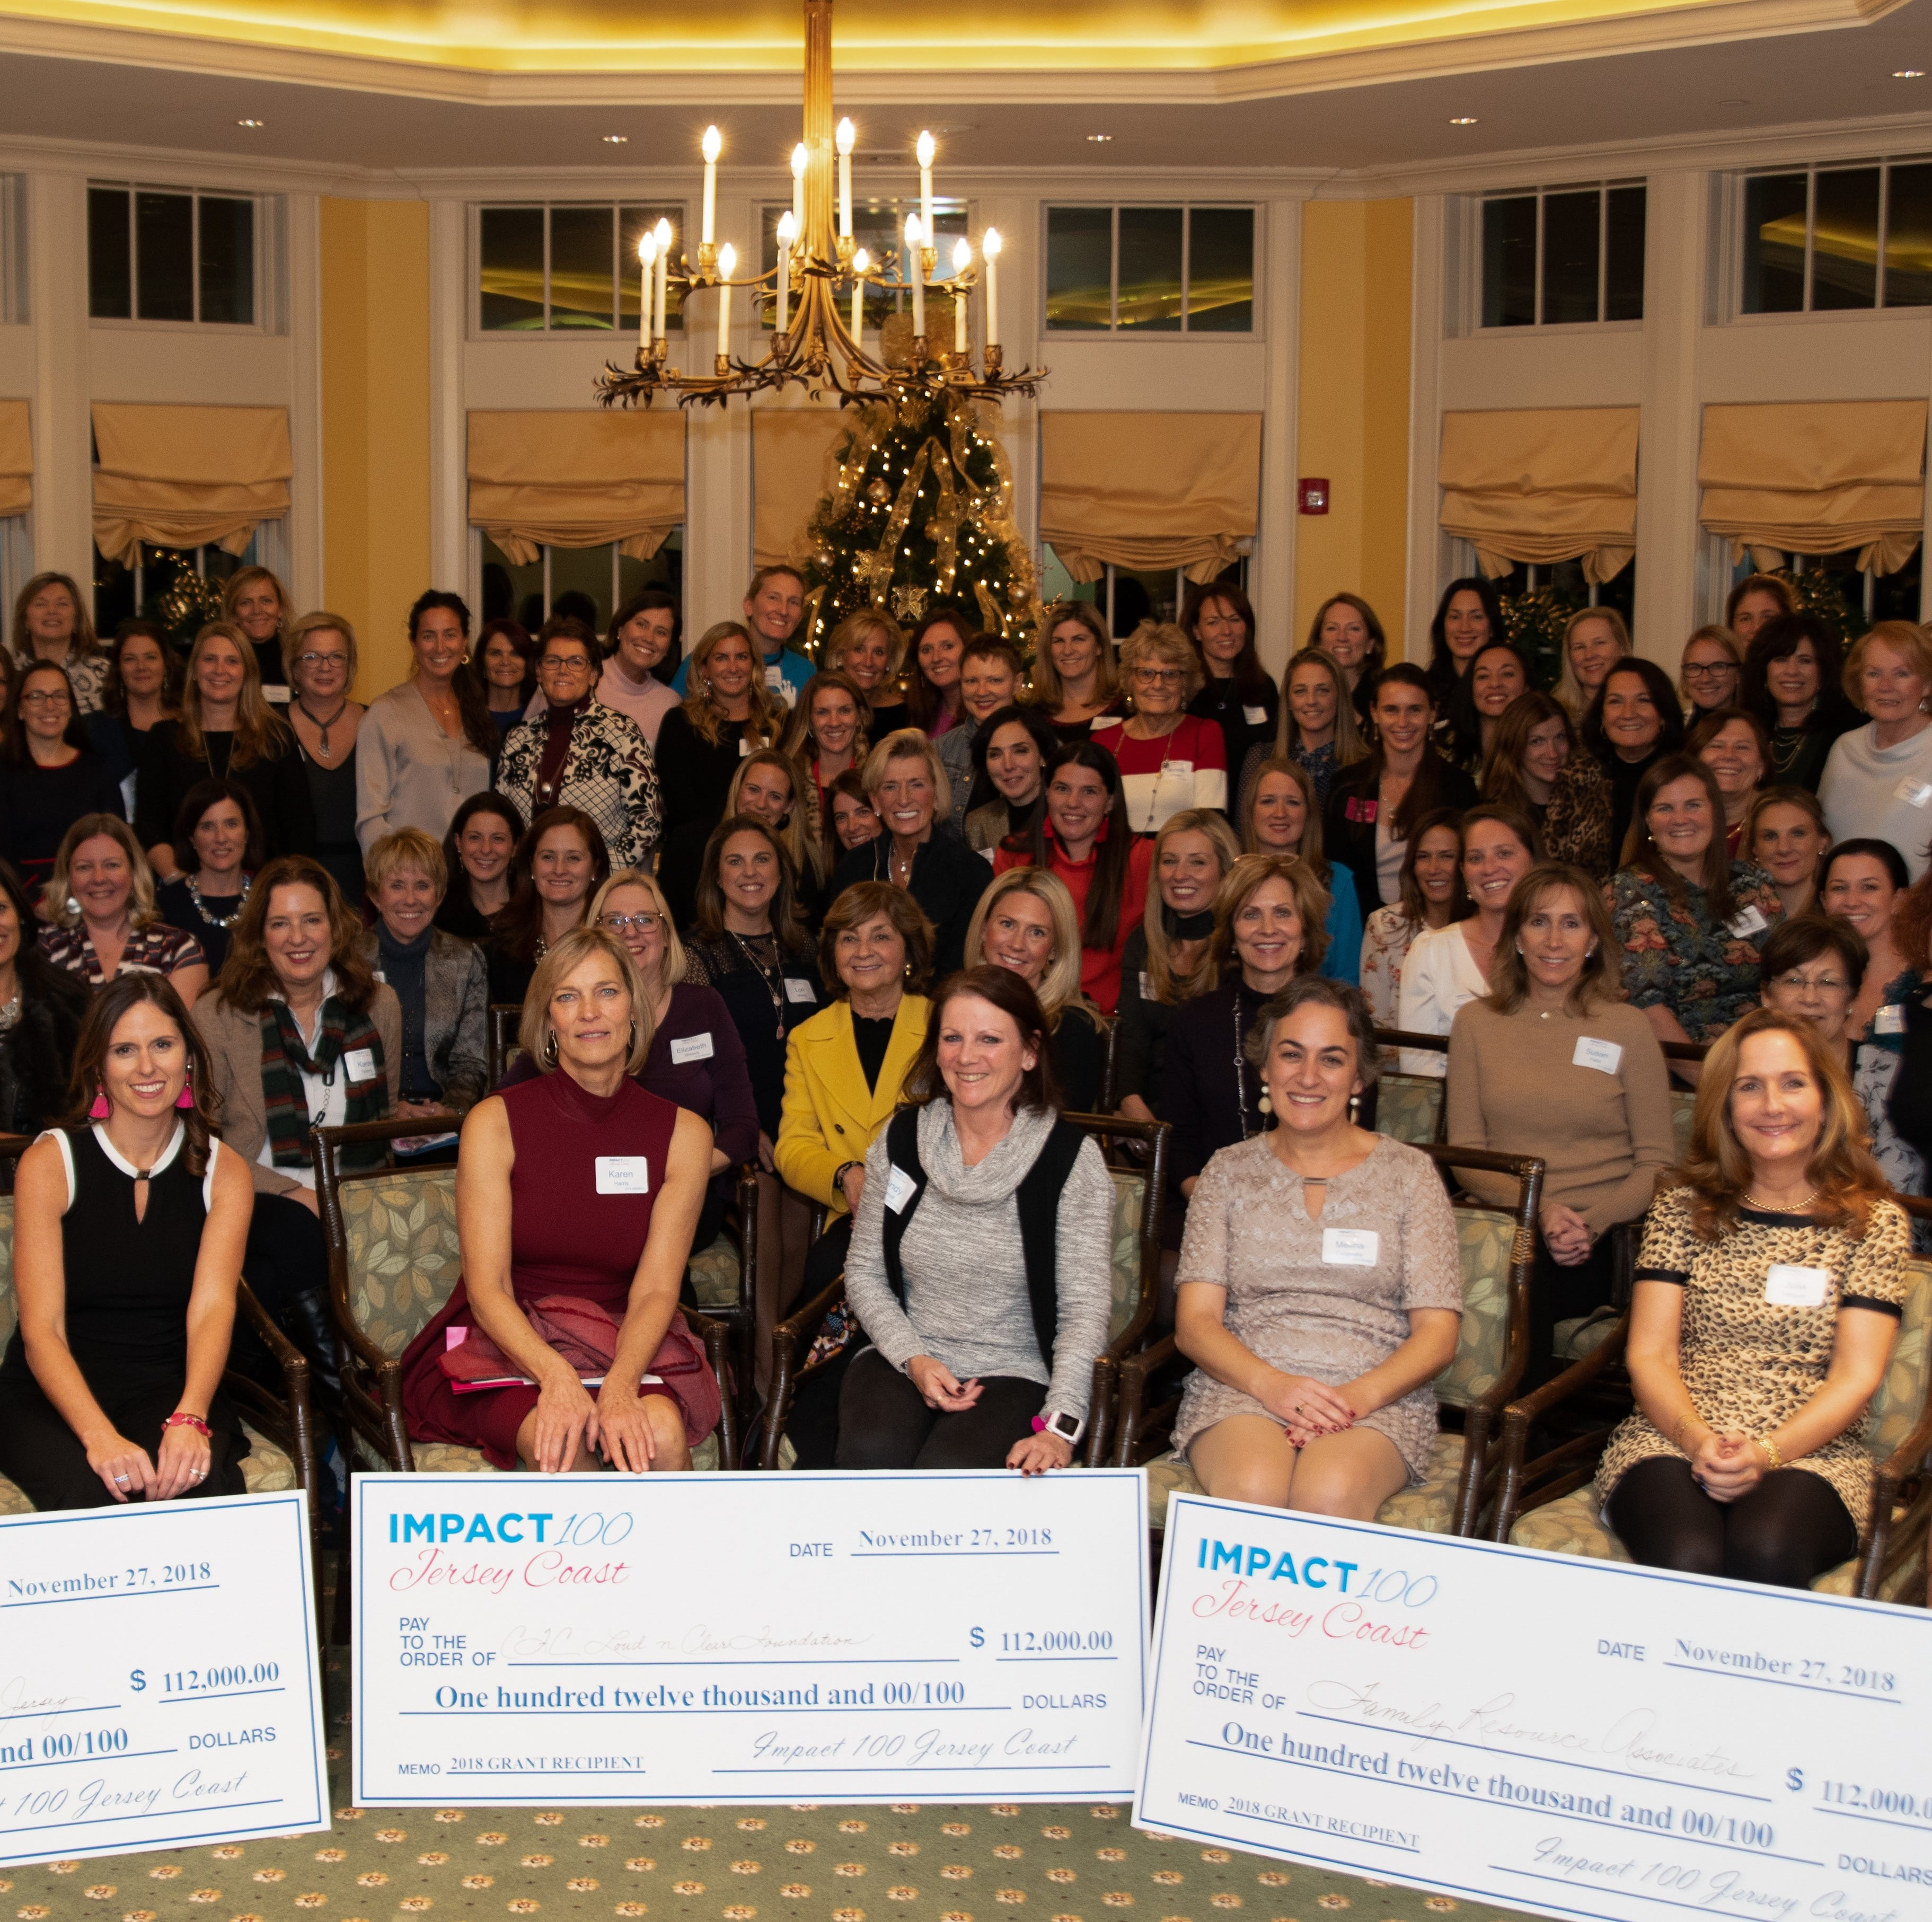 The Impact 100 Jersey Shore membership banquet, Nov. 27, 2018, at the Navesink Country Club. The group awarded three grants of $112,000 each to three non-profits.